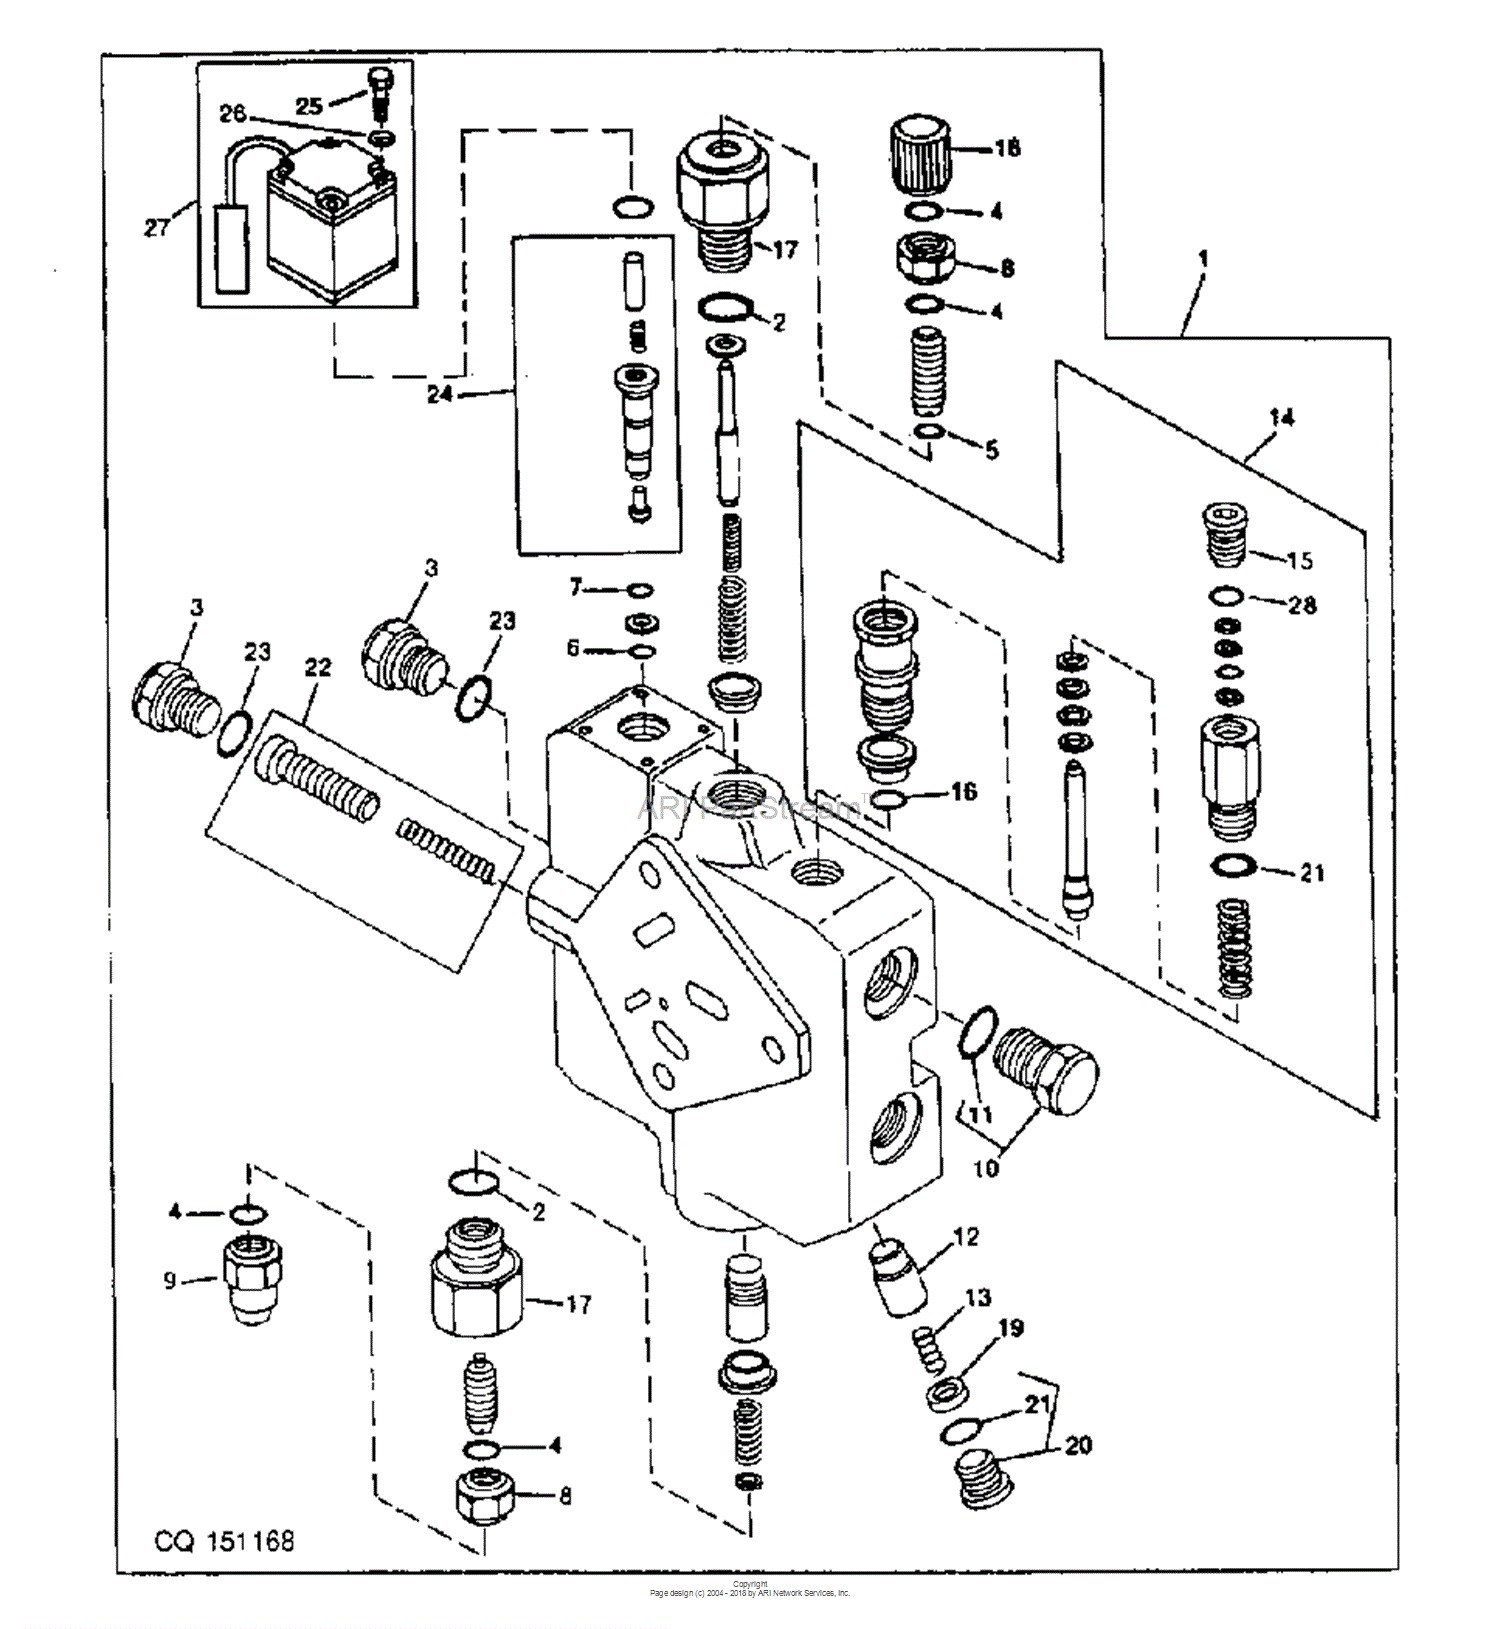 Tractor Engine Parts Diagram John Deere Parts Diagrams John Deere 7500 Tractor south America Of Tractor Engine Parts Diagram